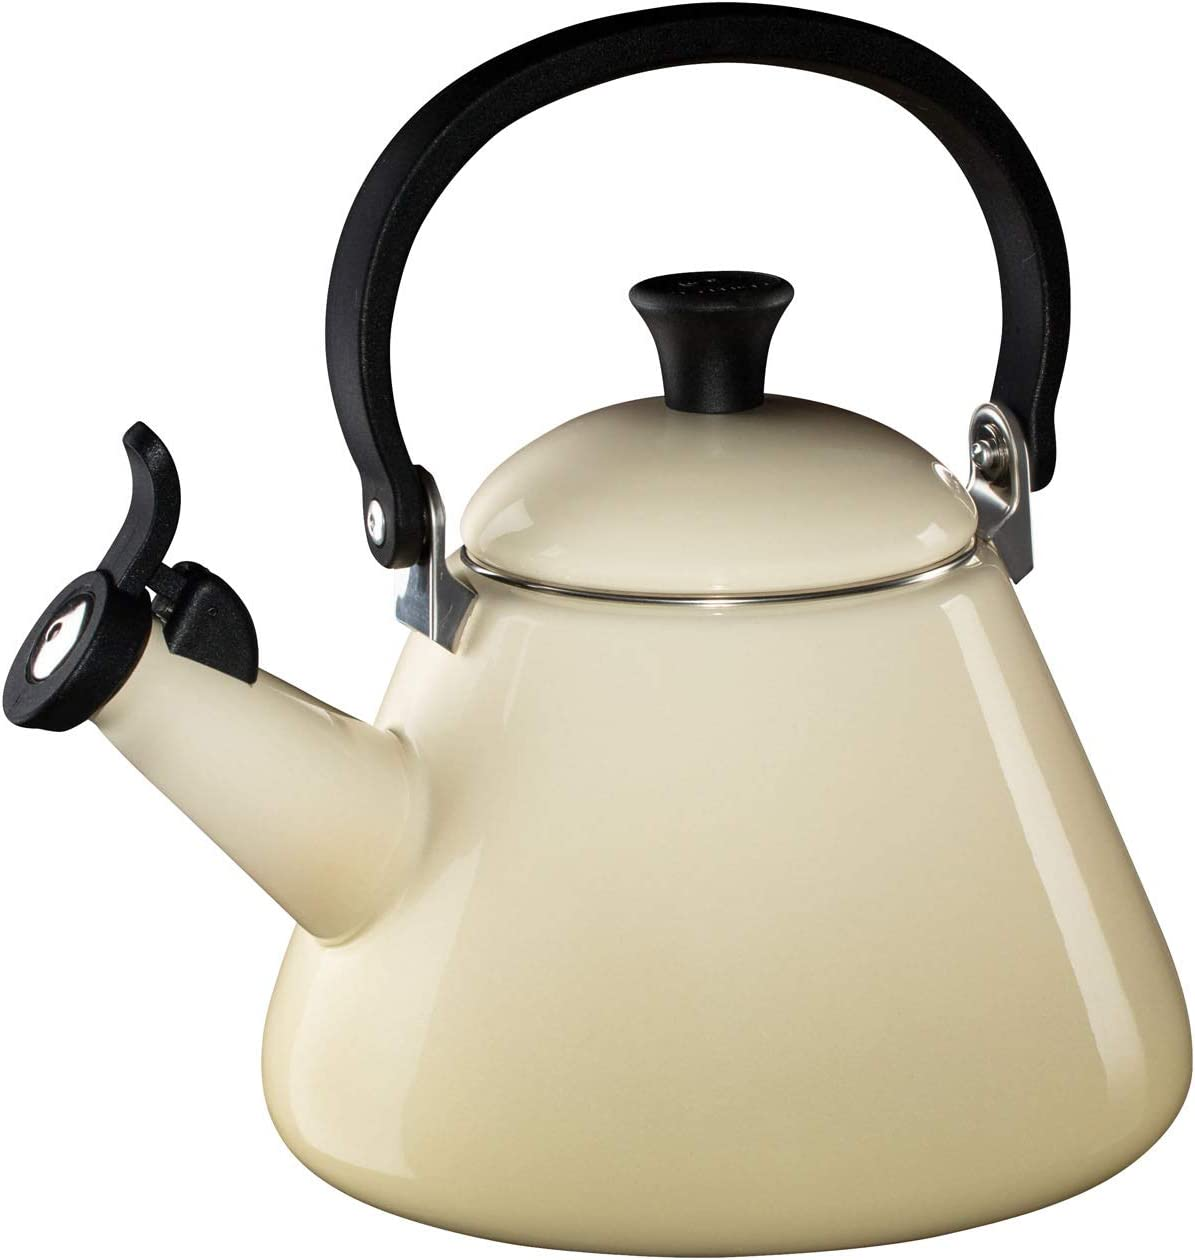 Le Creuset Kone Stove Top Kettle with Whistle, Suitable for All Hob Types Including Induction and Cast Iron, Enamelled Steel, Capacity: 1.6 L, Almond,